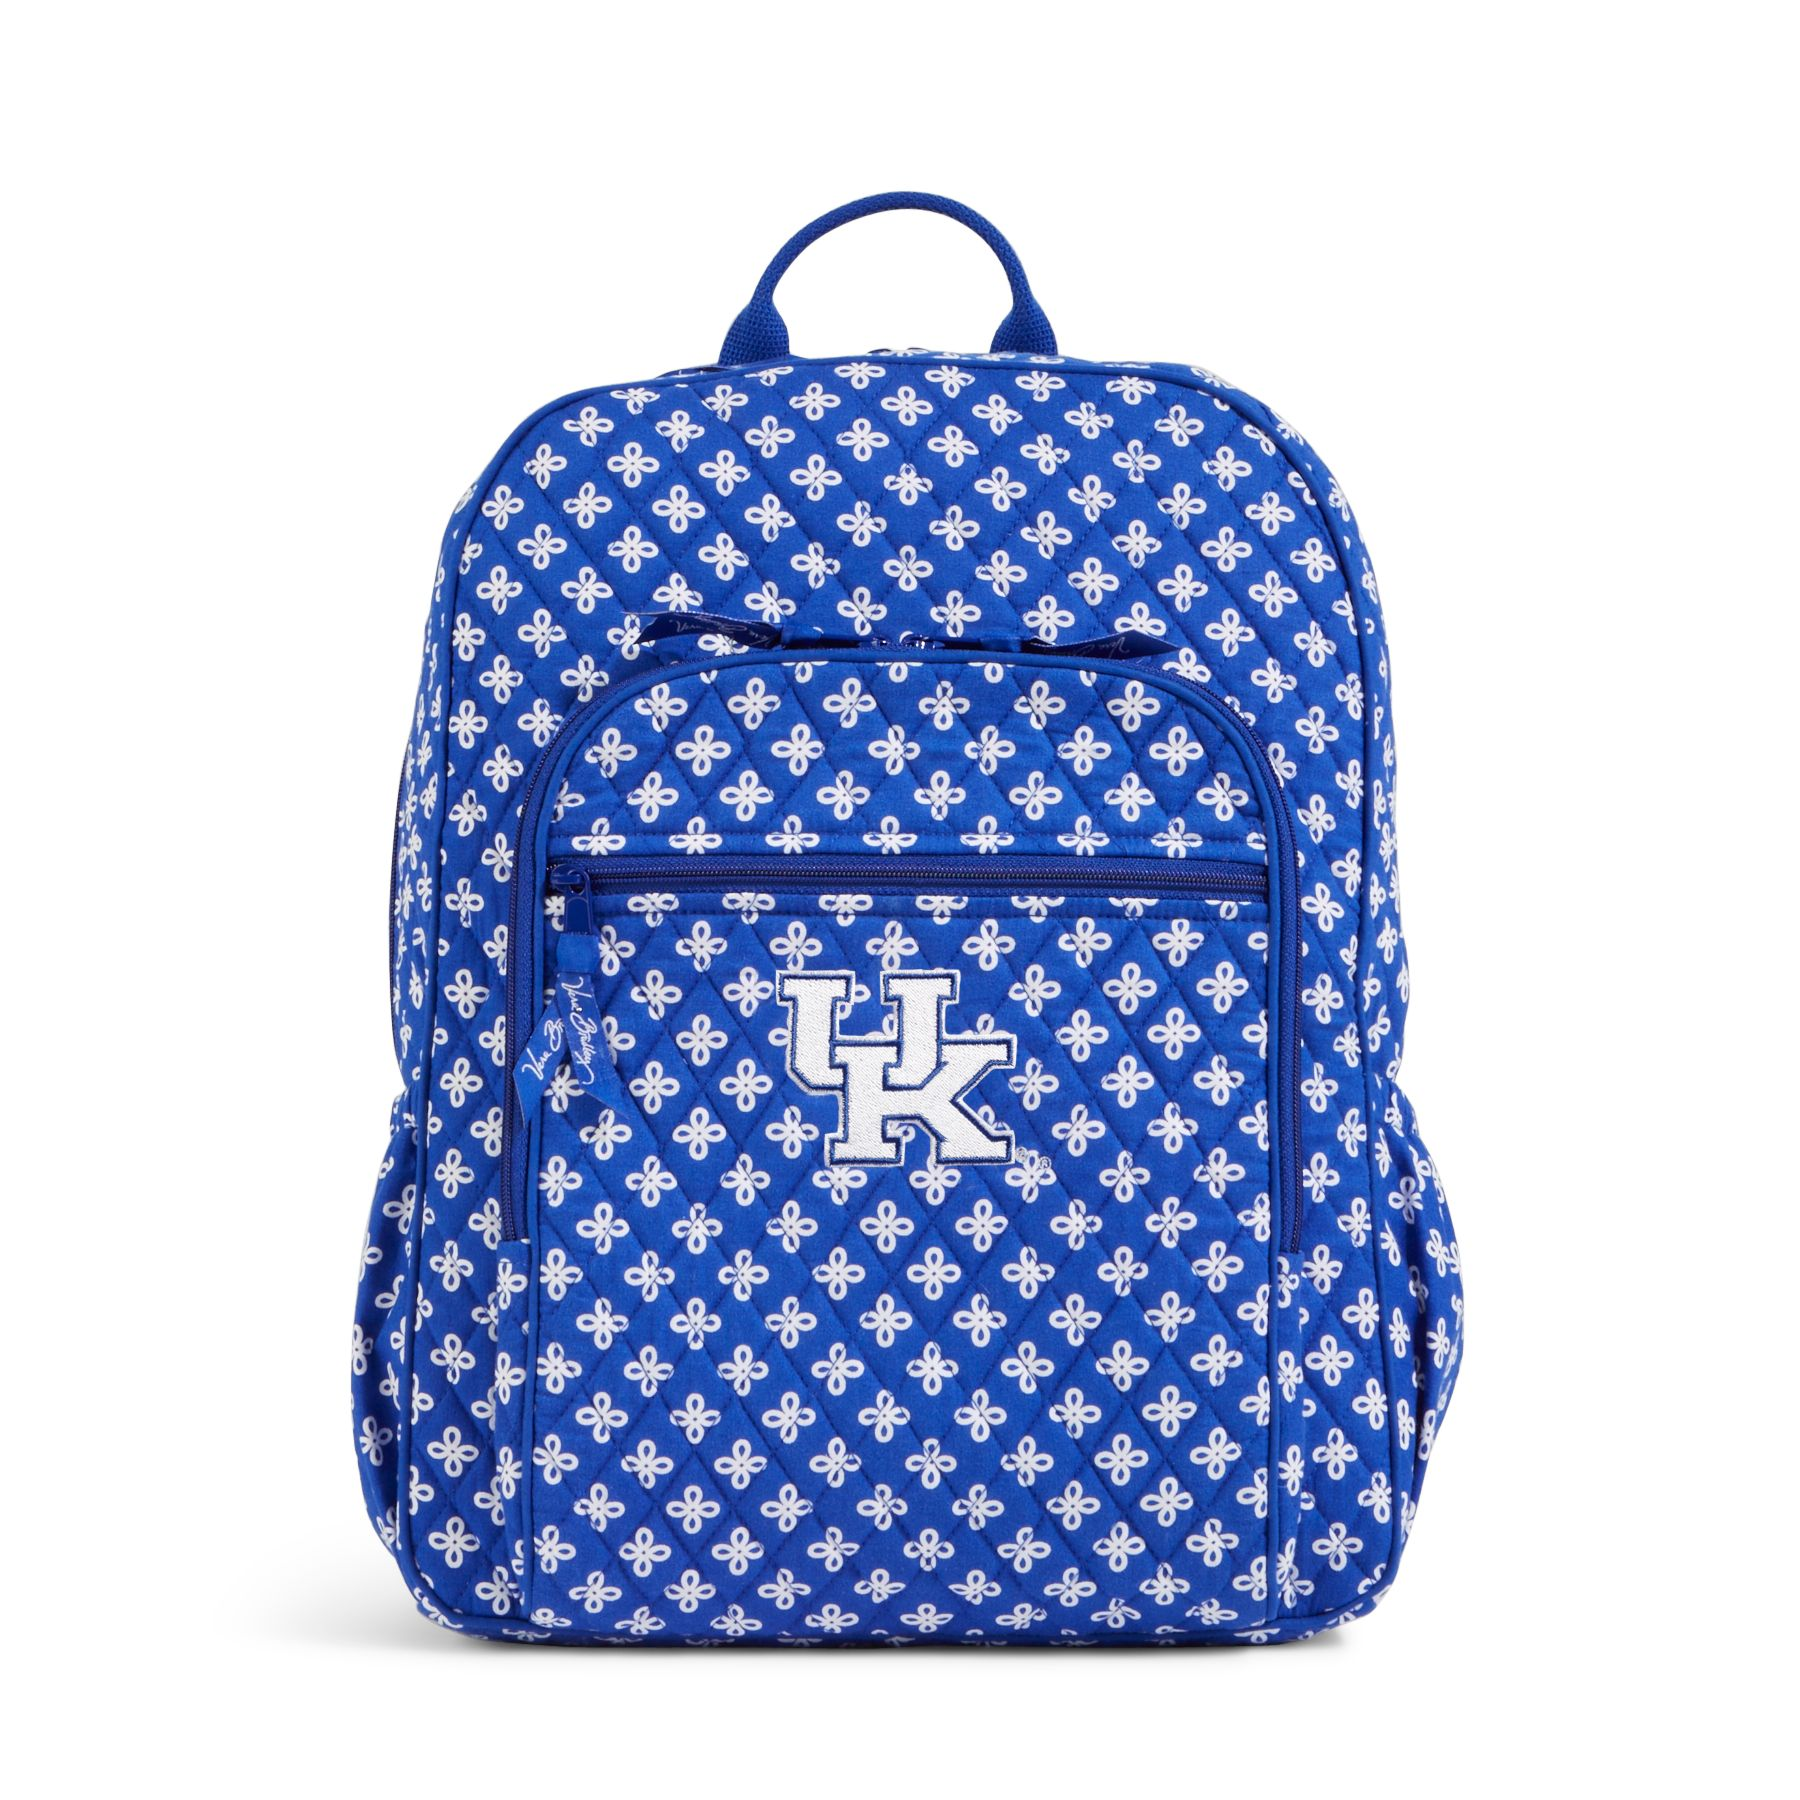 Vera Bradley Campus Backpack In Royal White Mini Concerto